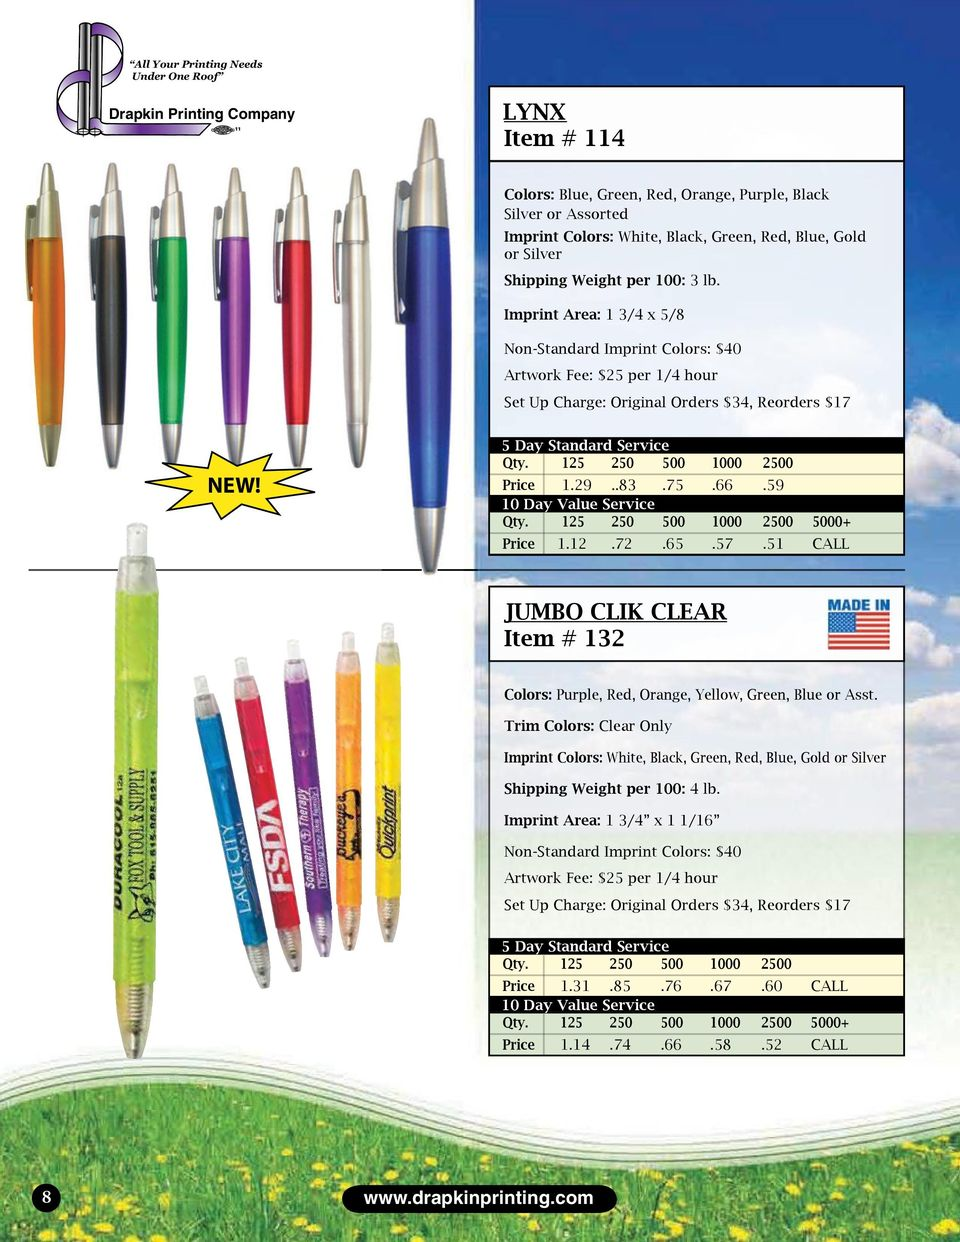 51 CALL JUMBO CLIK CLEAR Item # 132 Colors: Purple, Red, Orange, Yellow, Green, Blue or Asst.